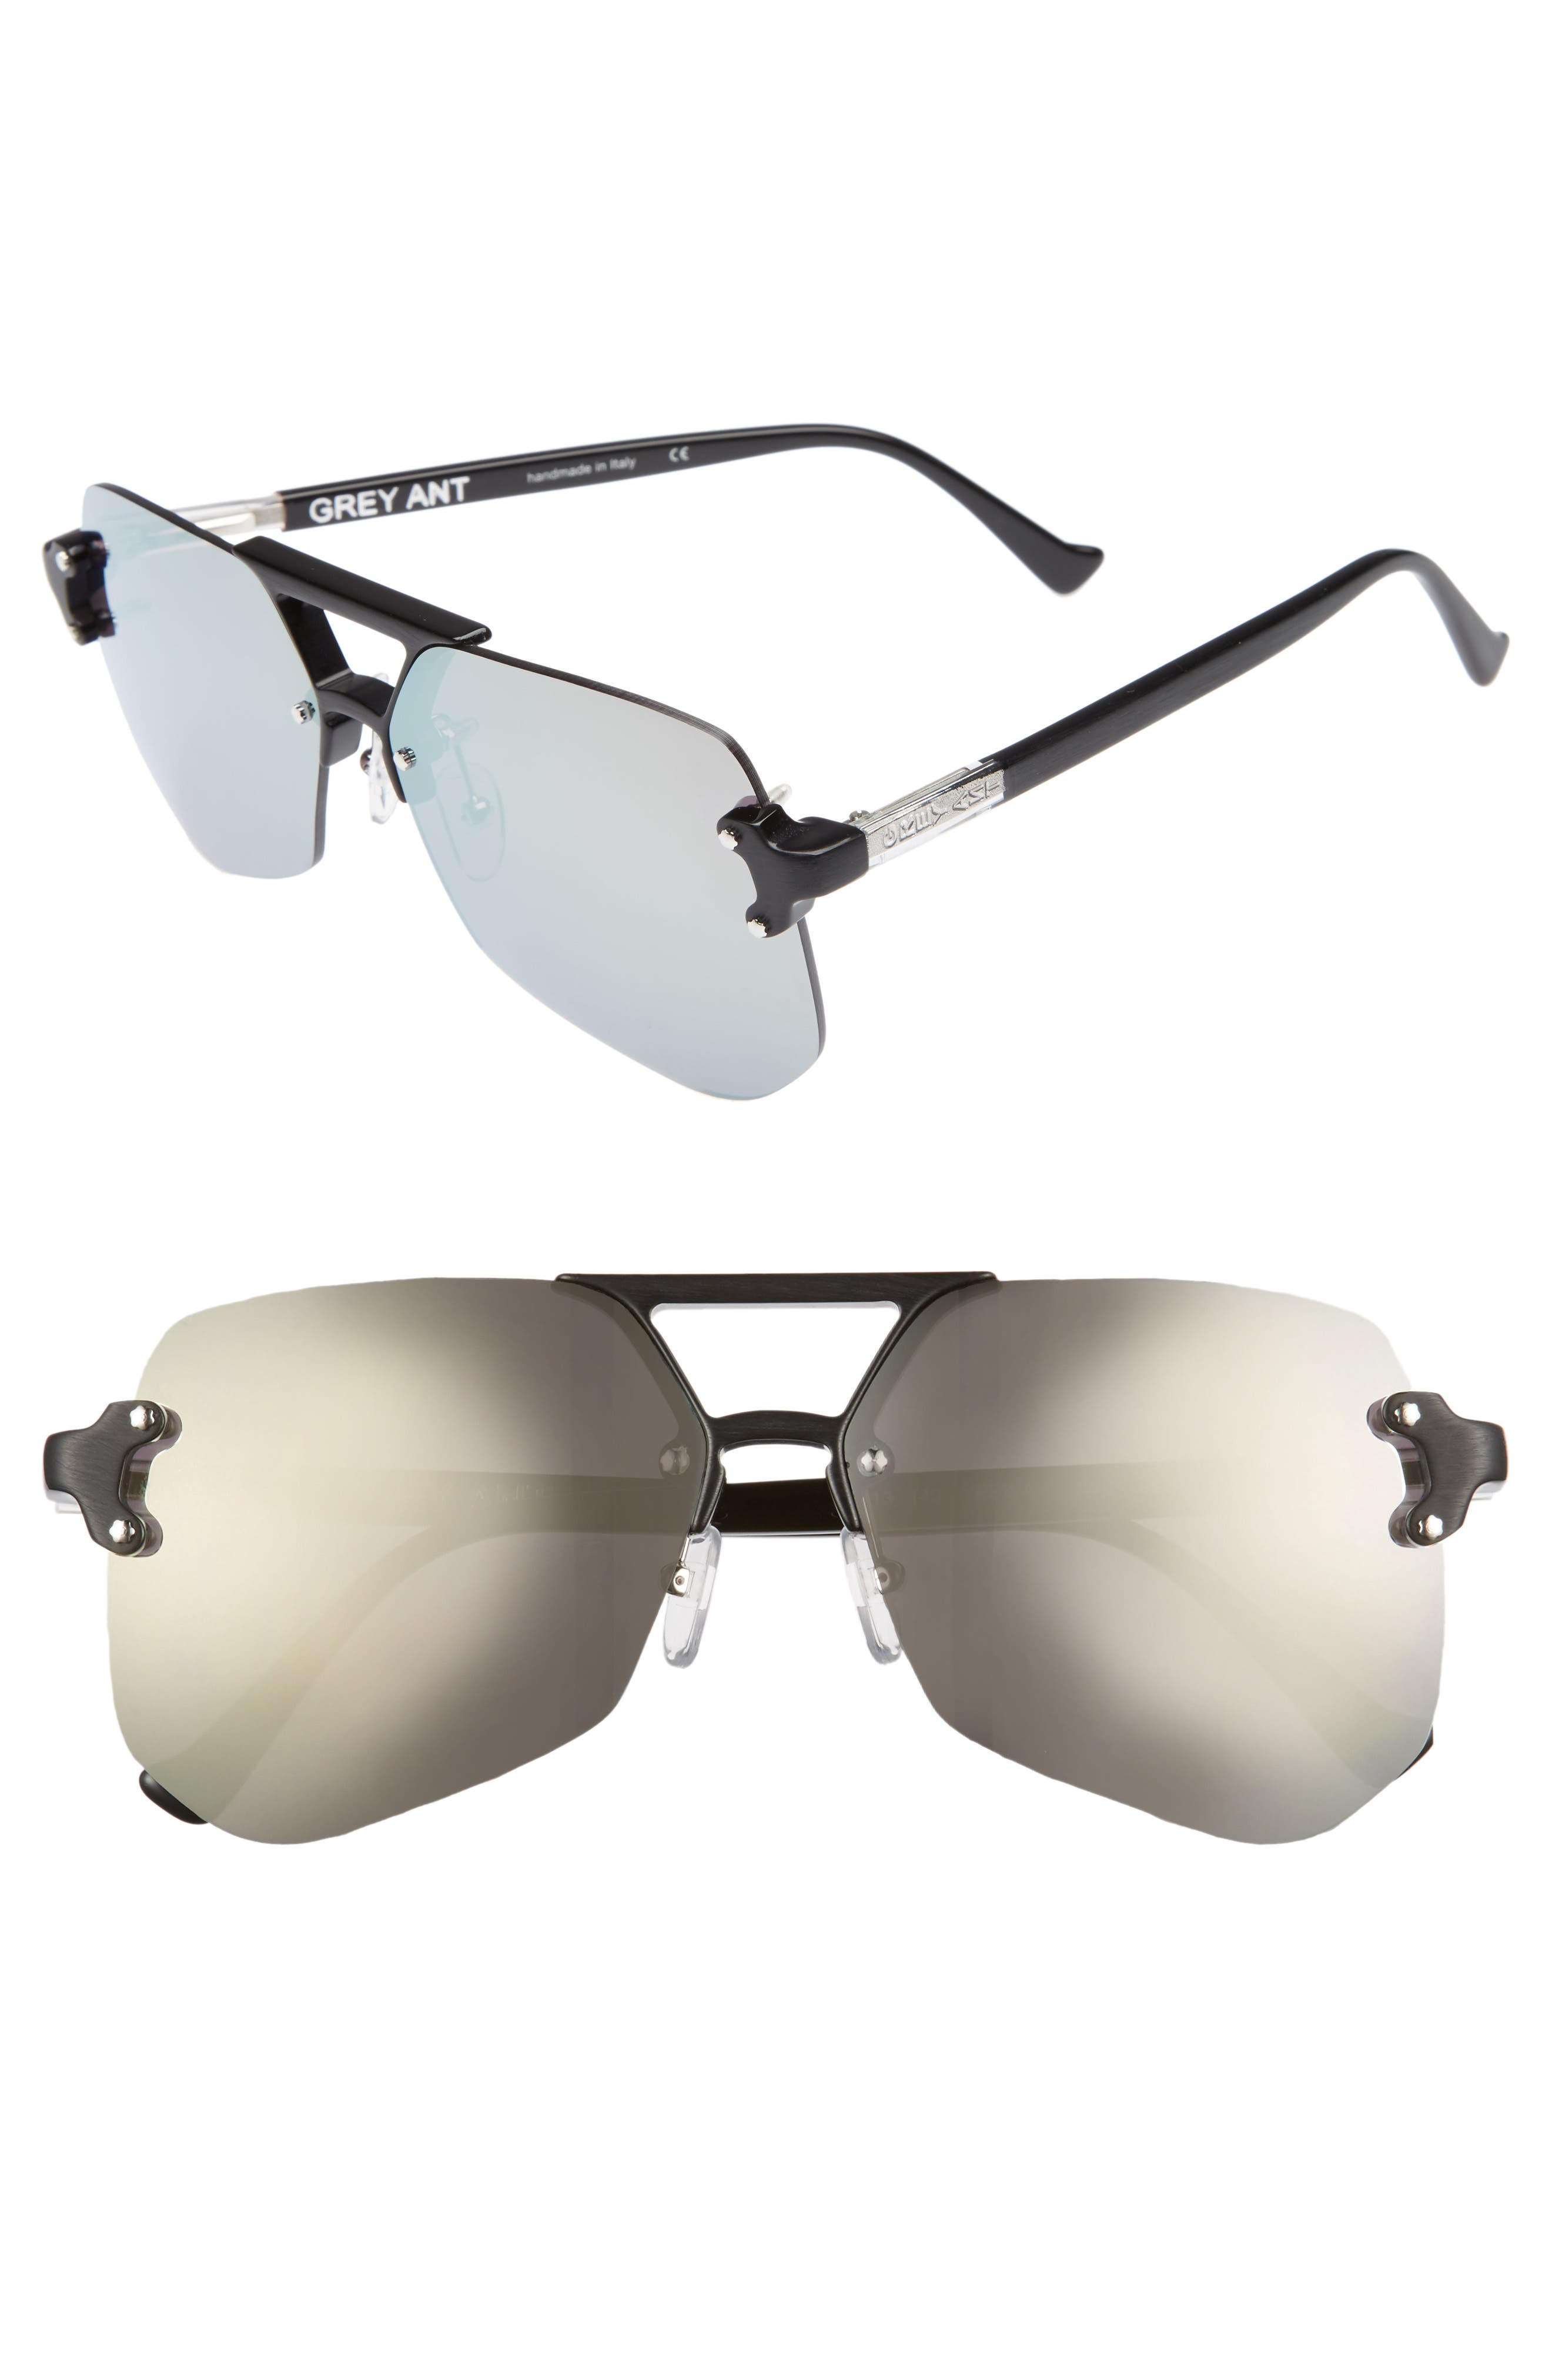 Yesway 60mm Sunglasses,                         Main,                         color, Silver Lens/ Silver Hardware